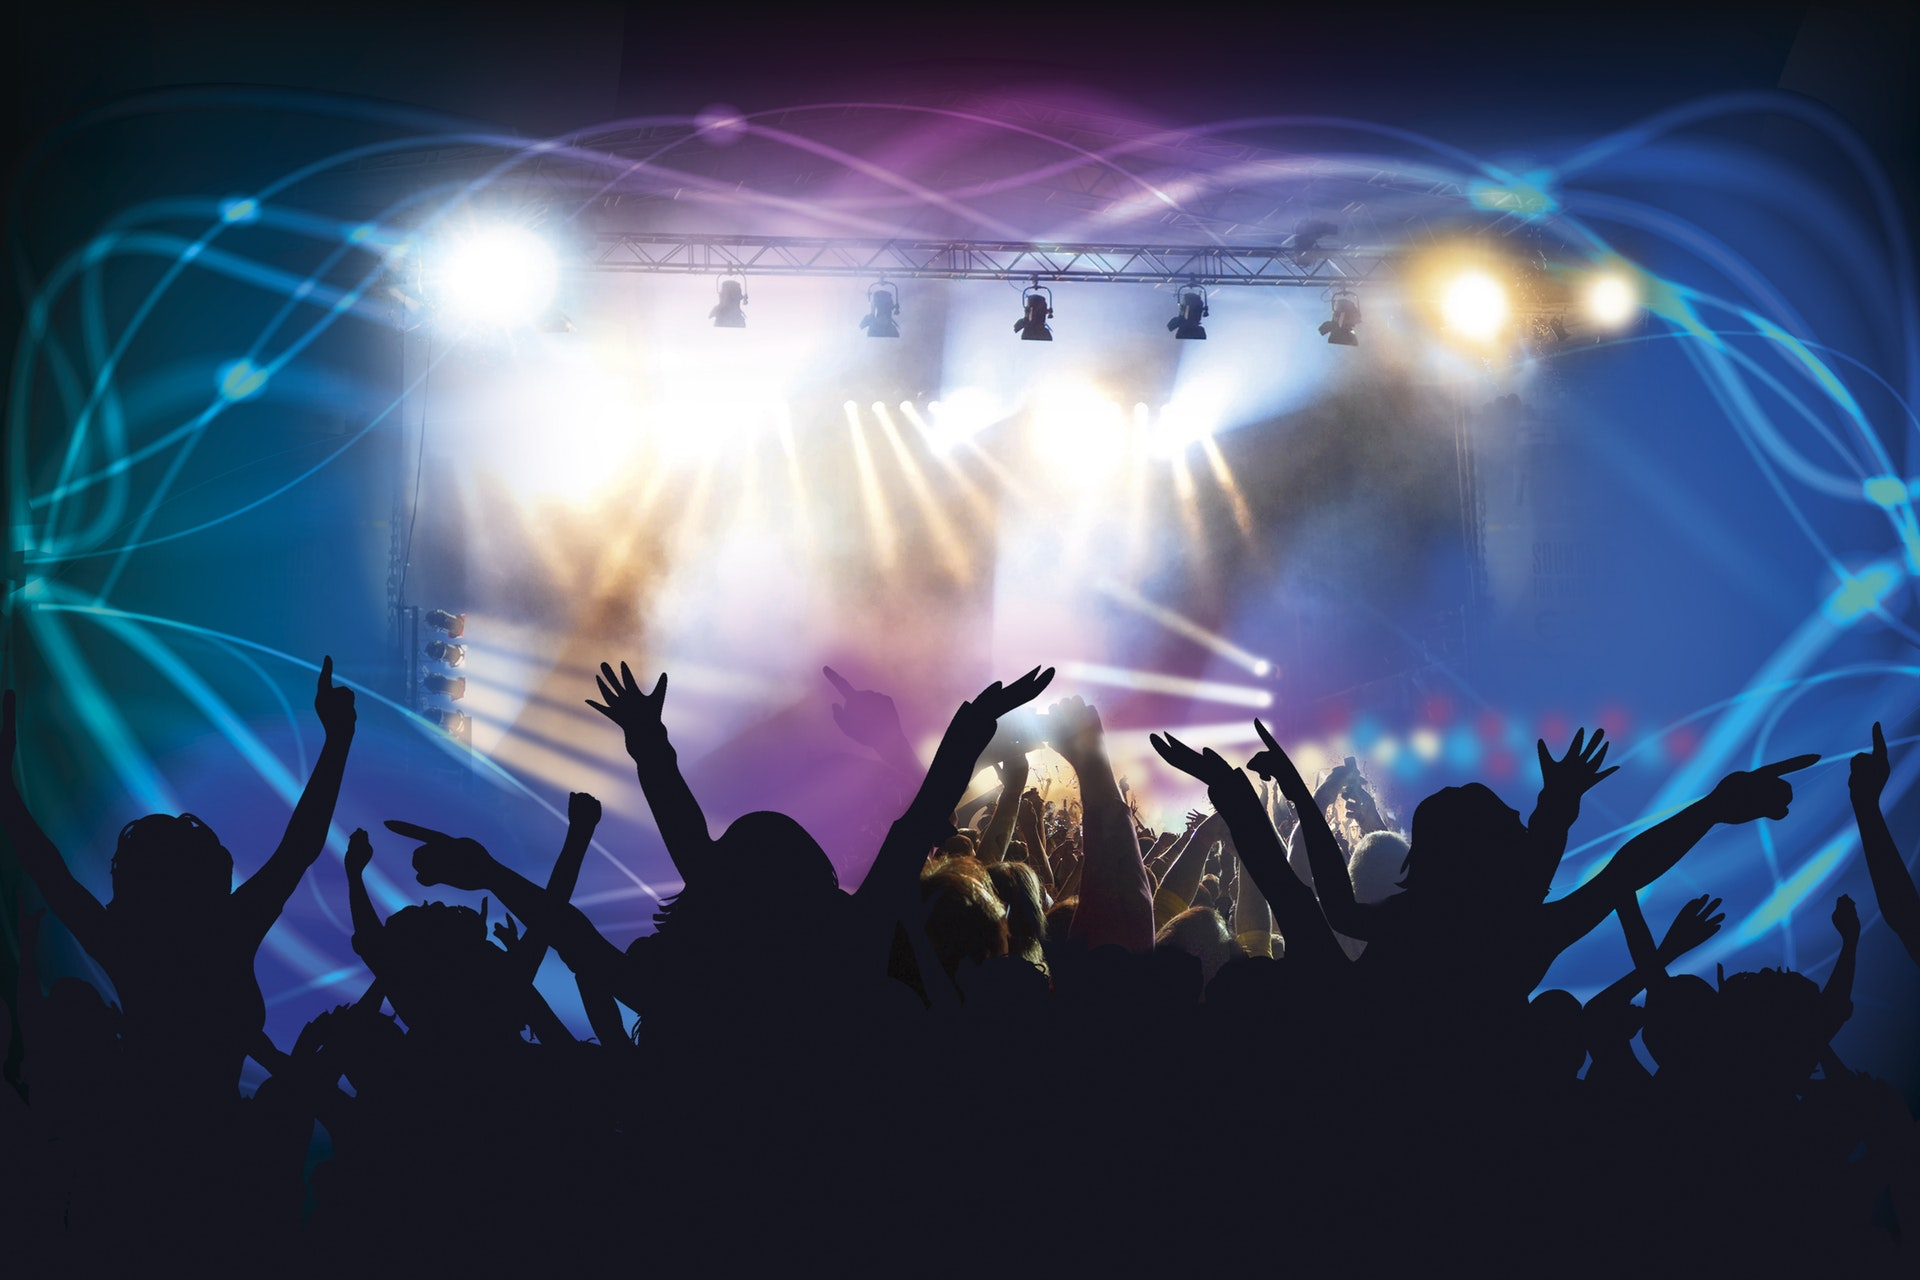 lights-party-dancing-music